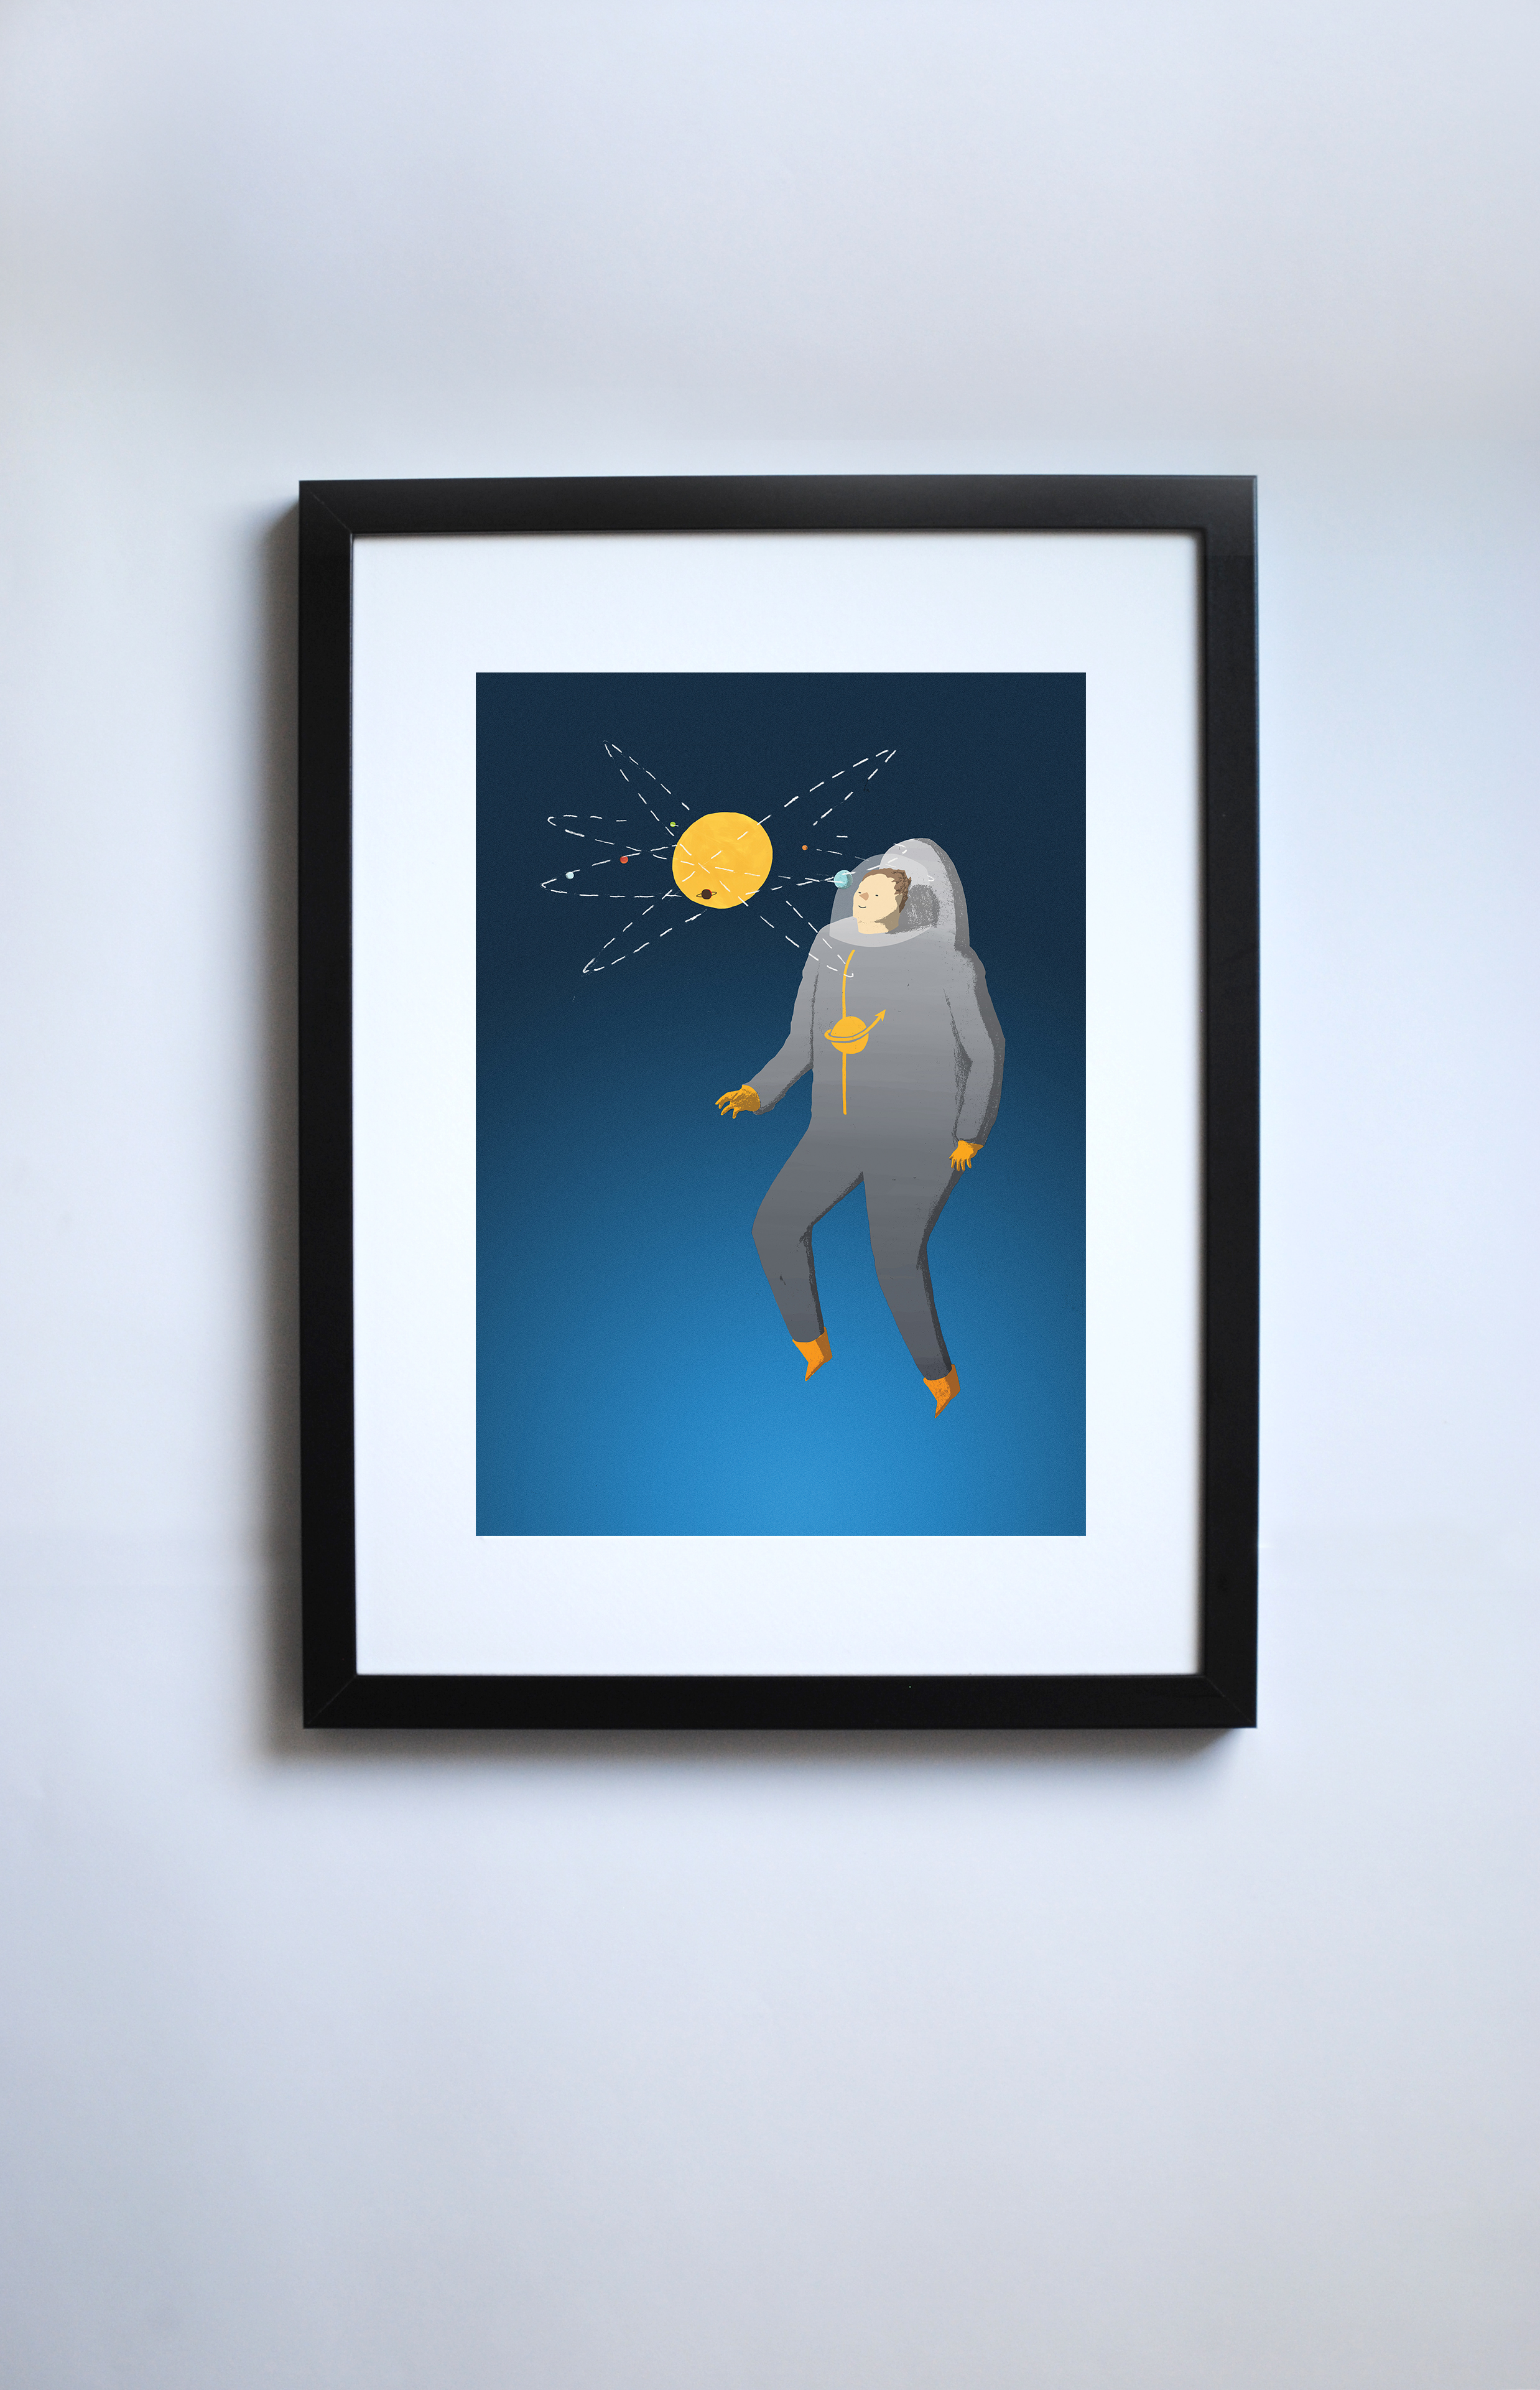 Spaceman in frame